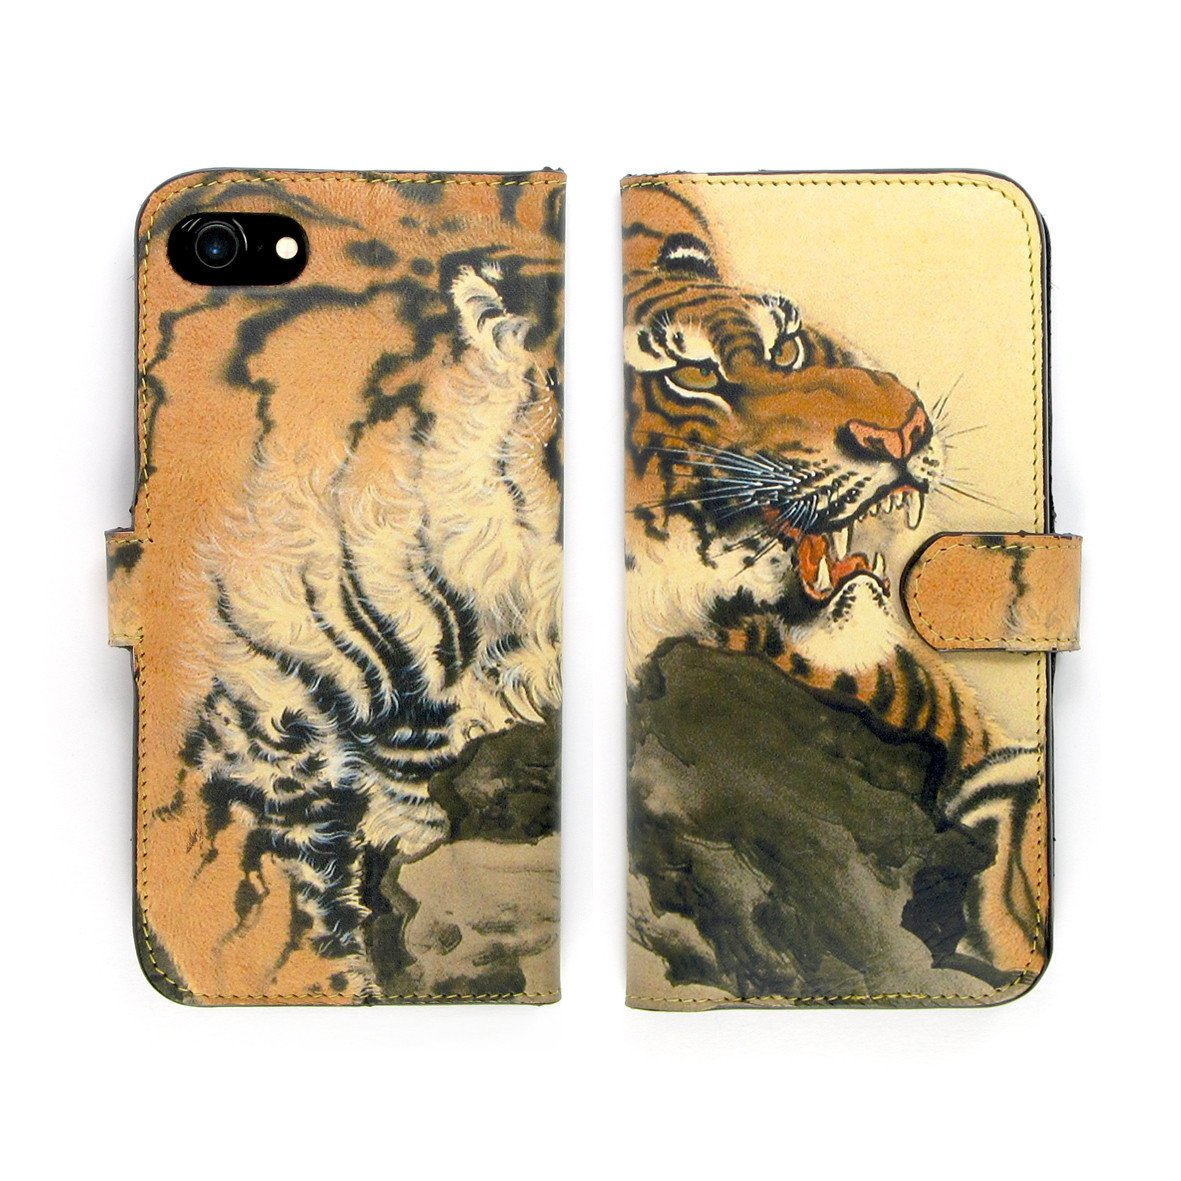 iPhone XS Max leather case. Tiger print phone case. Folio wallet designer flip phonecase by Tovi Sorga.